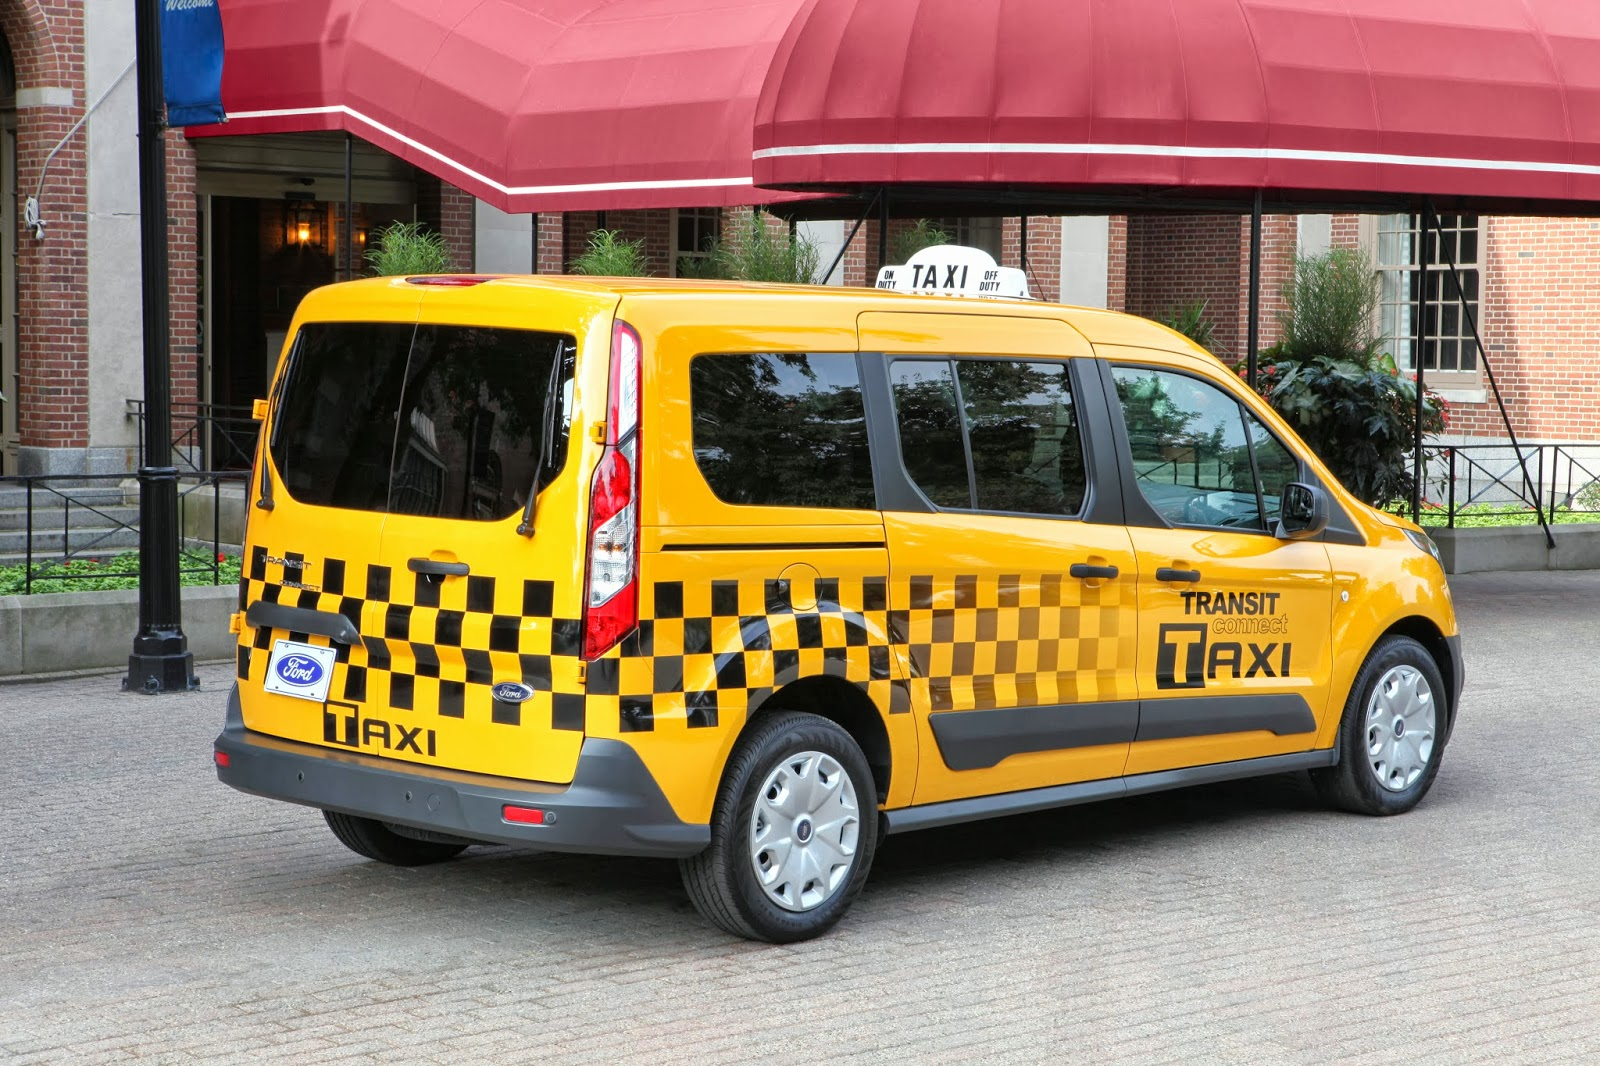 2019 Ford Transit Connect Taxi photo - 3